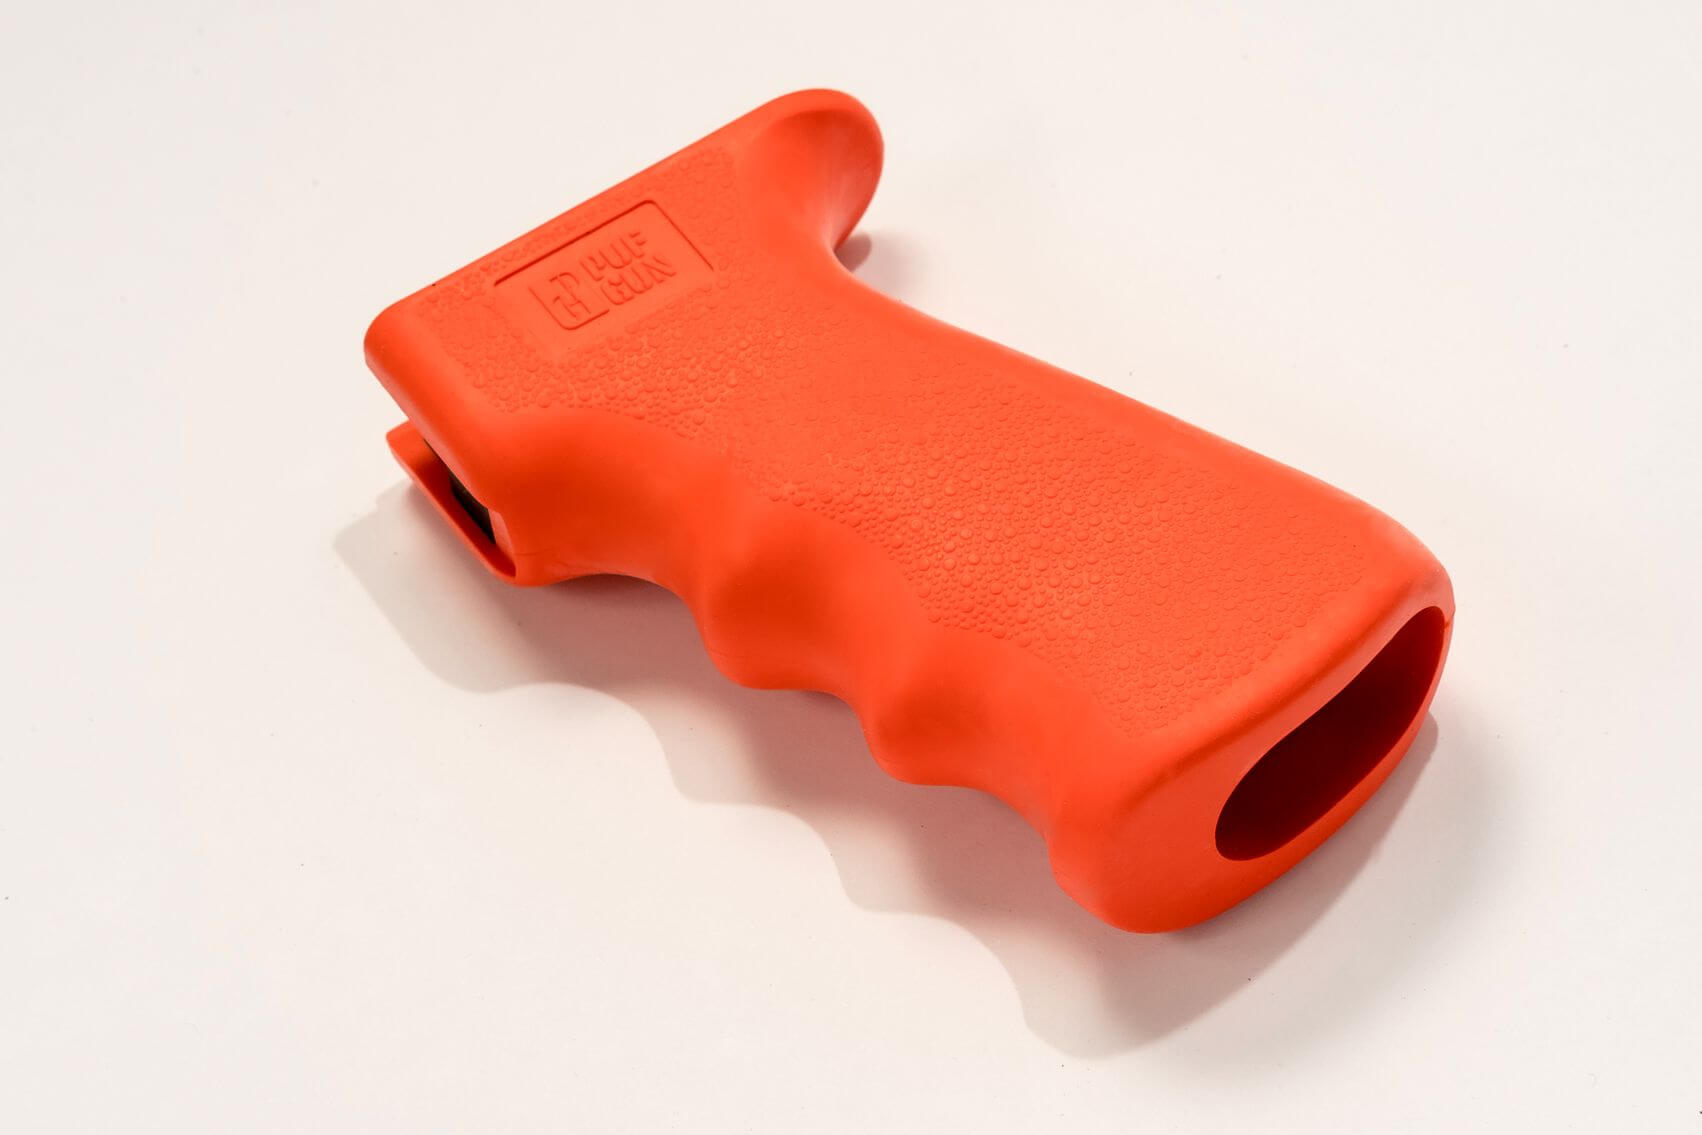 Anatomical hand grip for AK, Grip SG-M2/Or